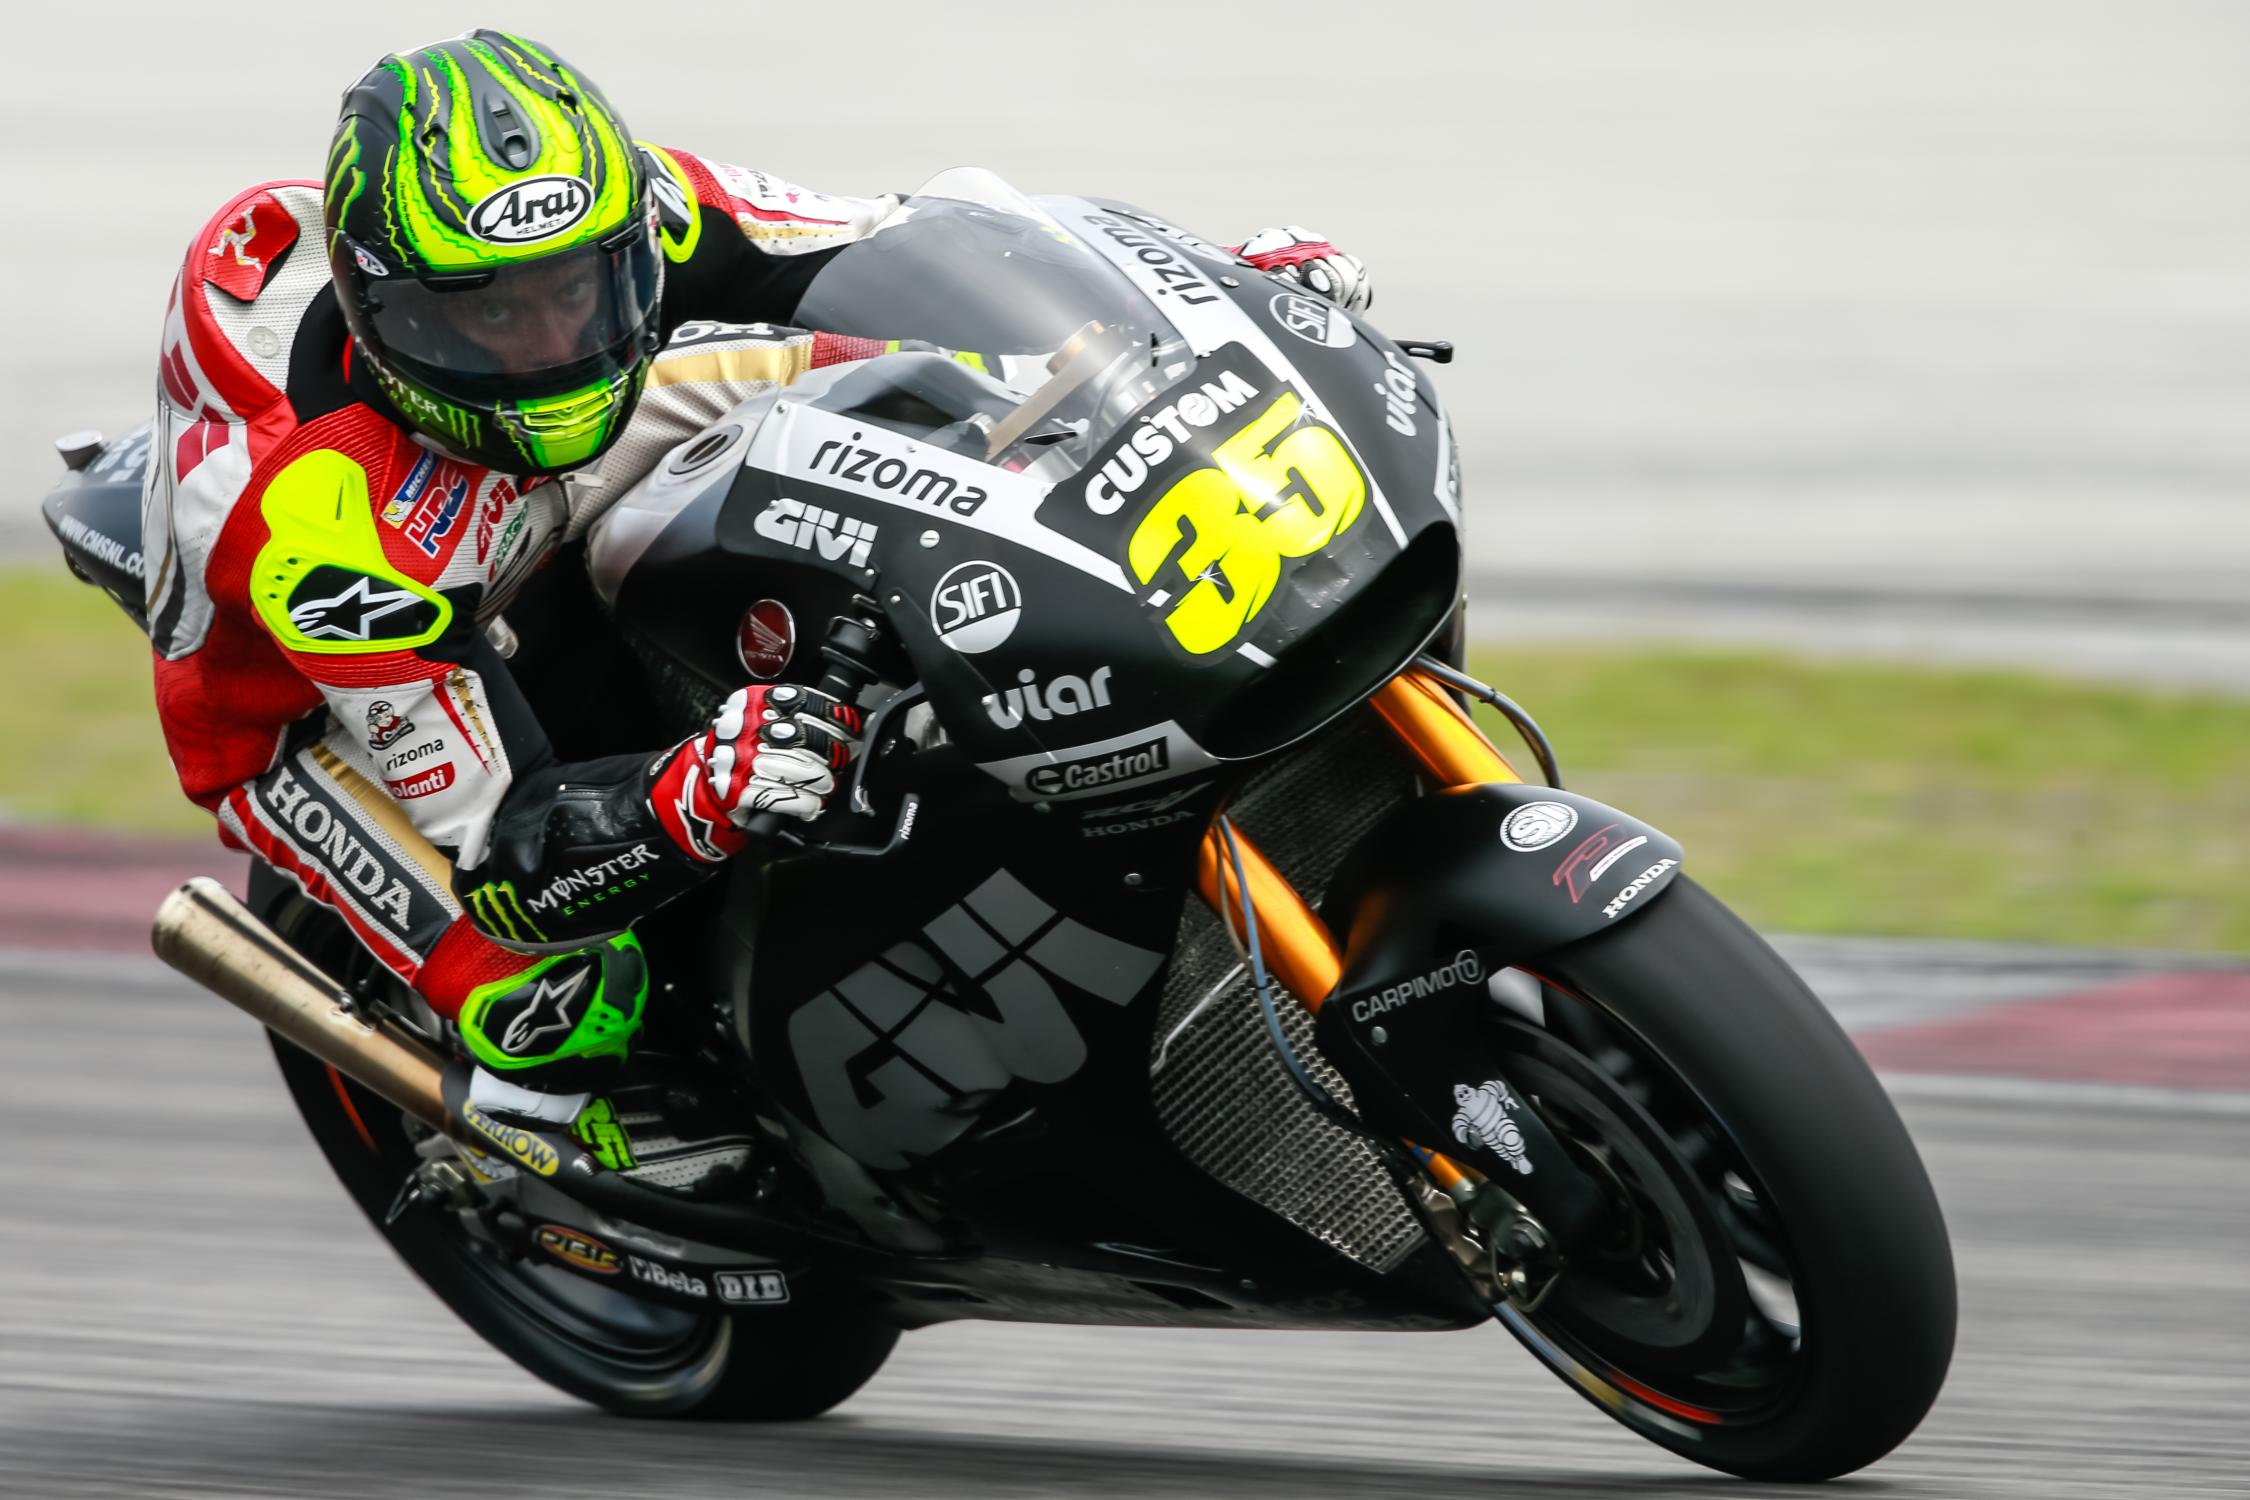 [MotoGP] Test Sepang 35-cal-crutchlow-eng_gp_0175.gallery_full_top_fullscreen